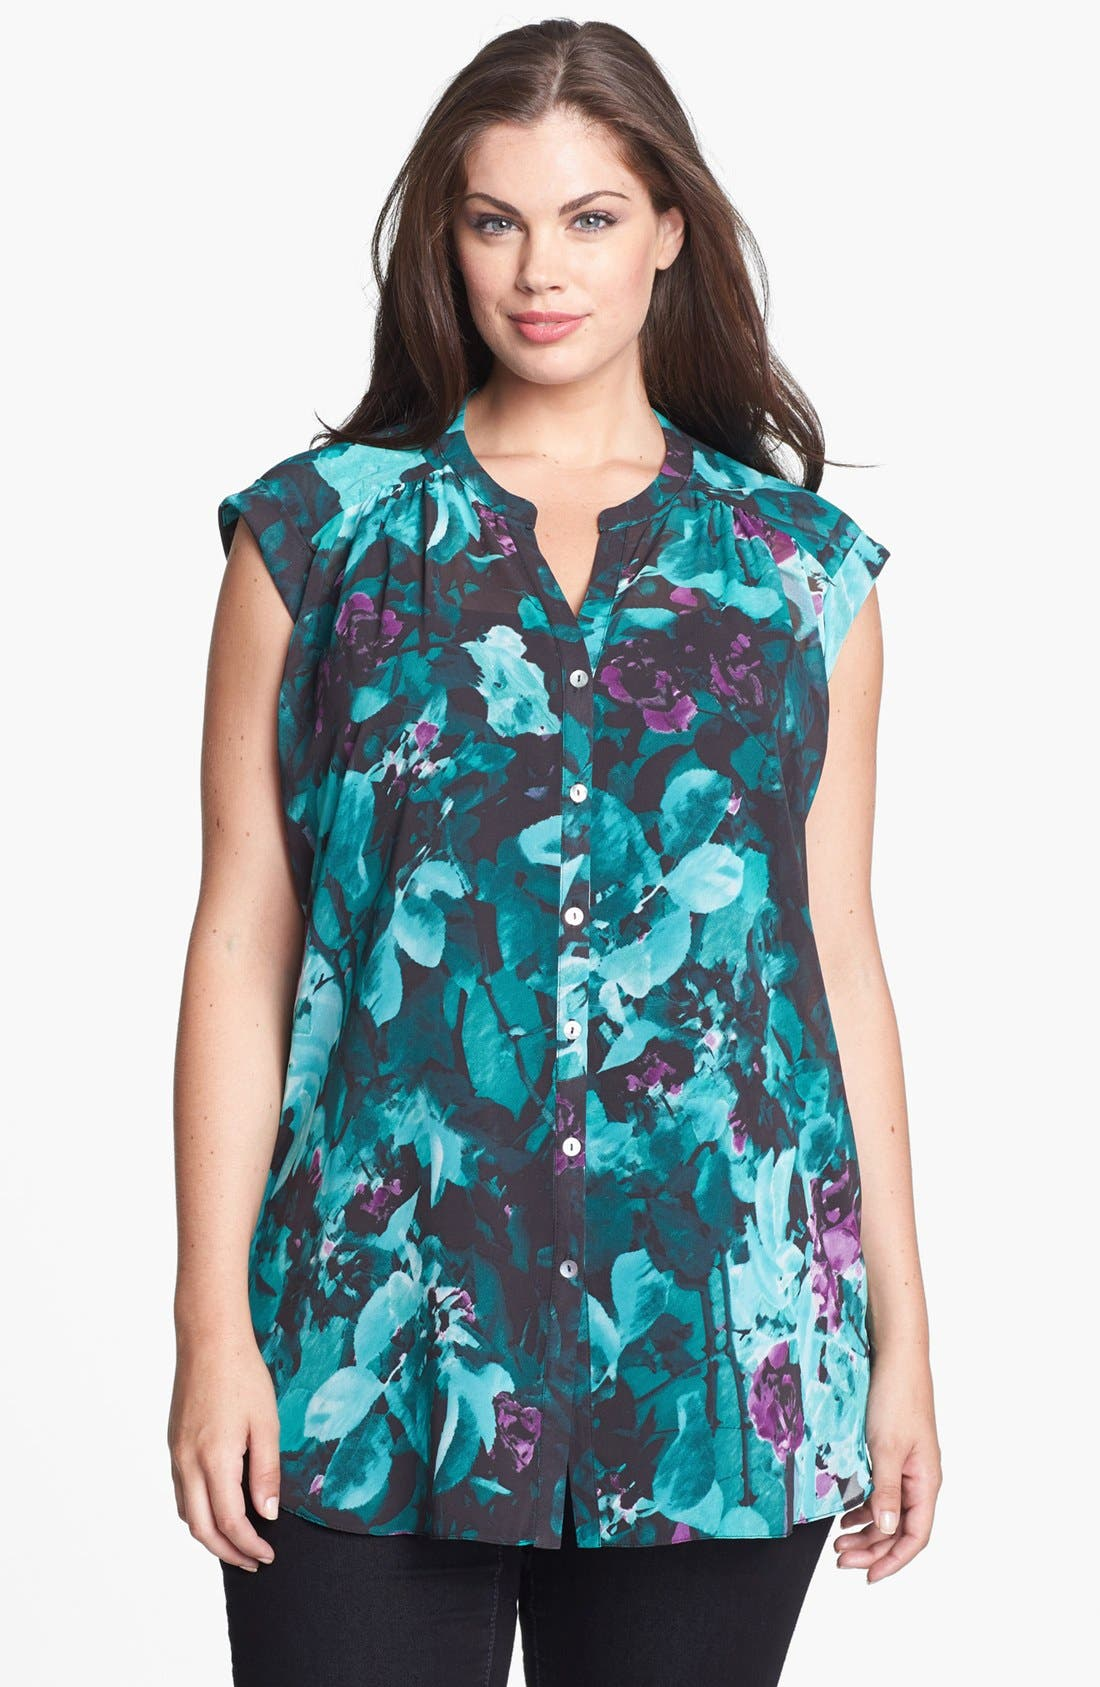 Alternate Image 1 Selected - Evans Print High/Low Blouse (Plus Size)